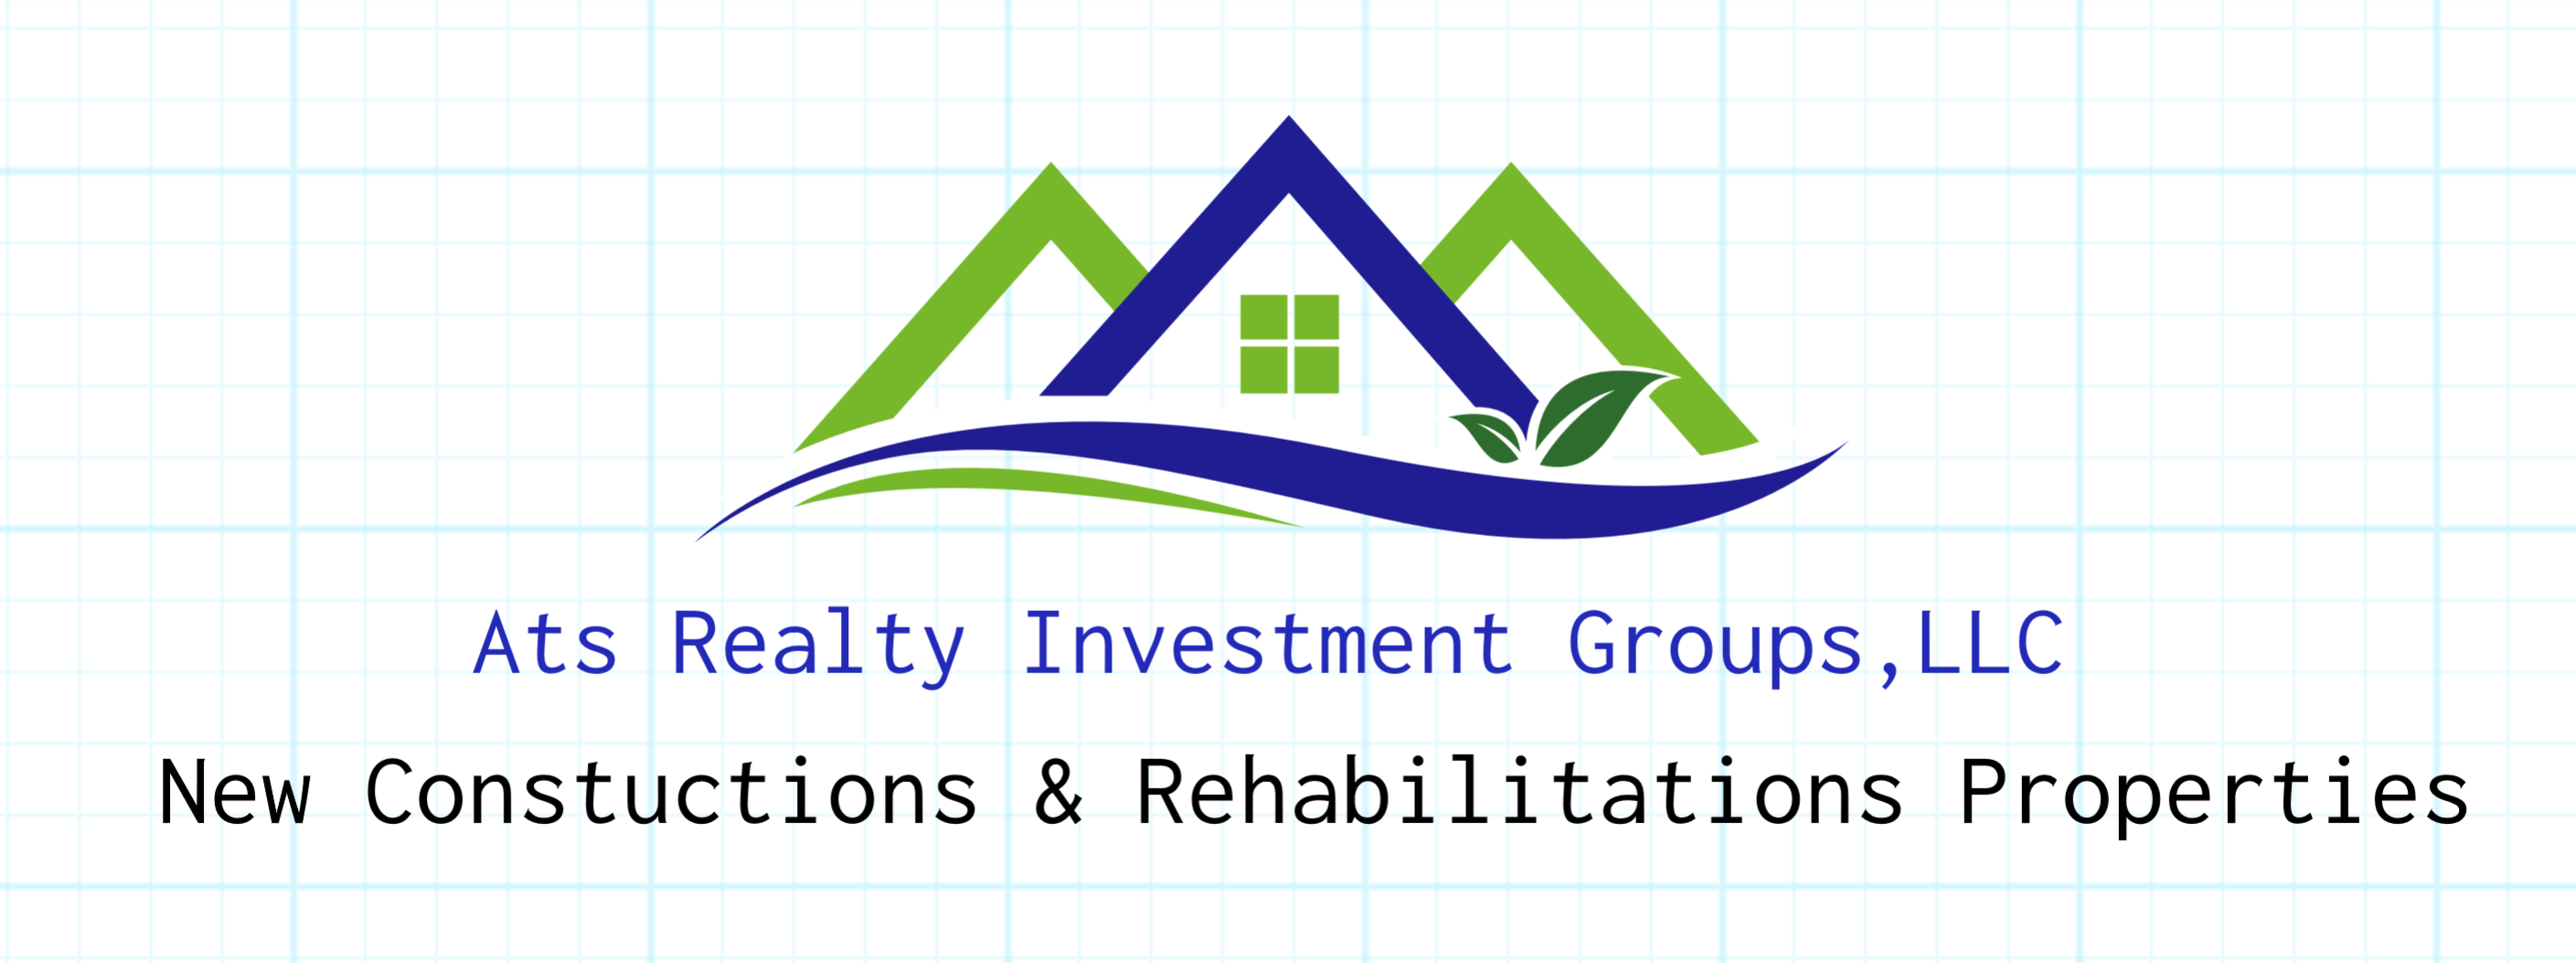 Ats Realty Investment Groups,LLC